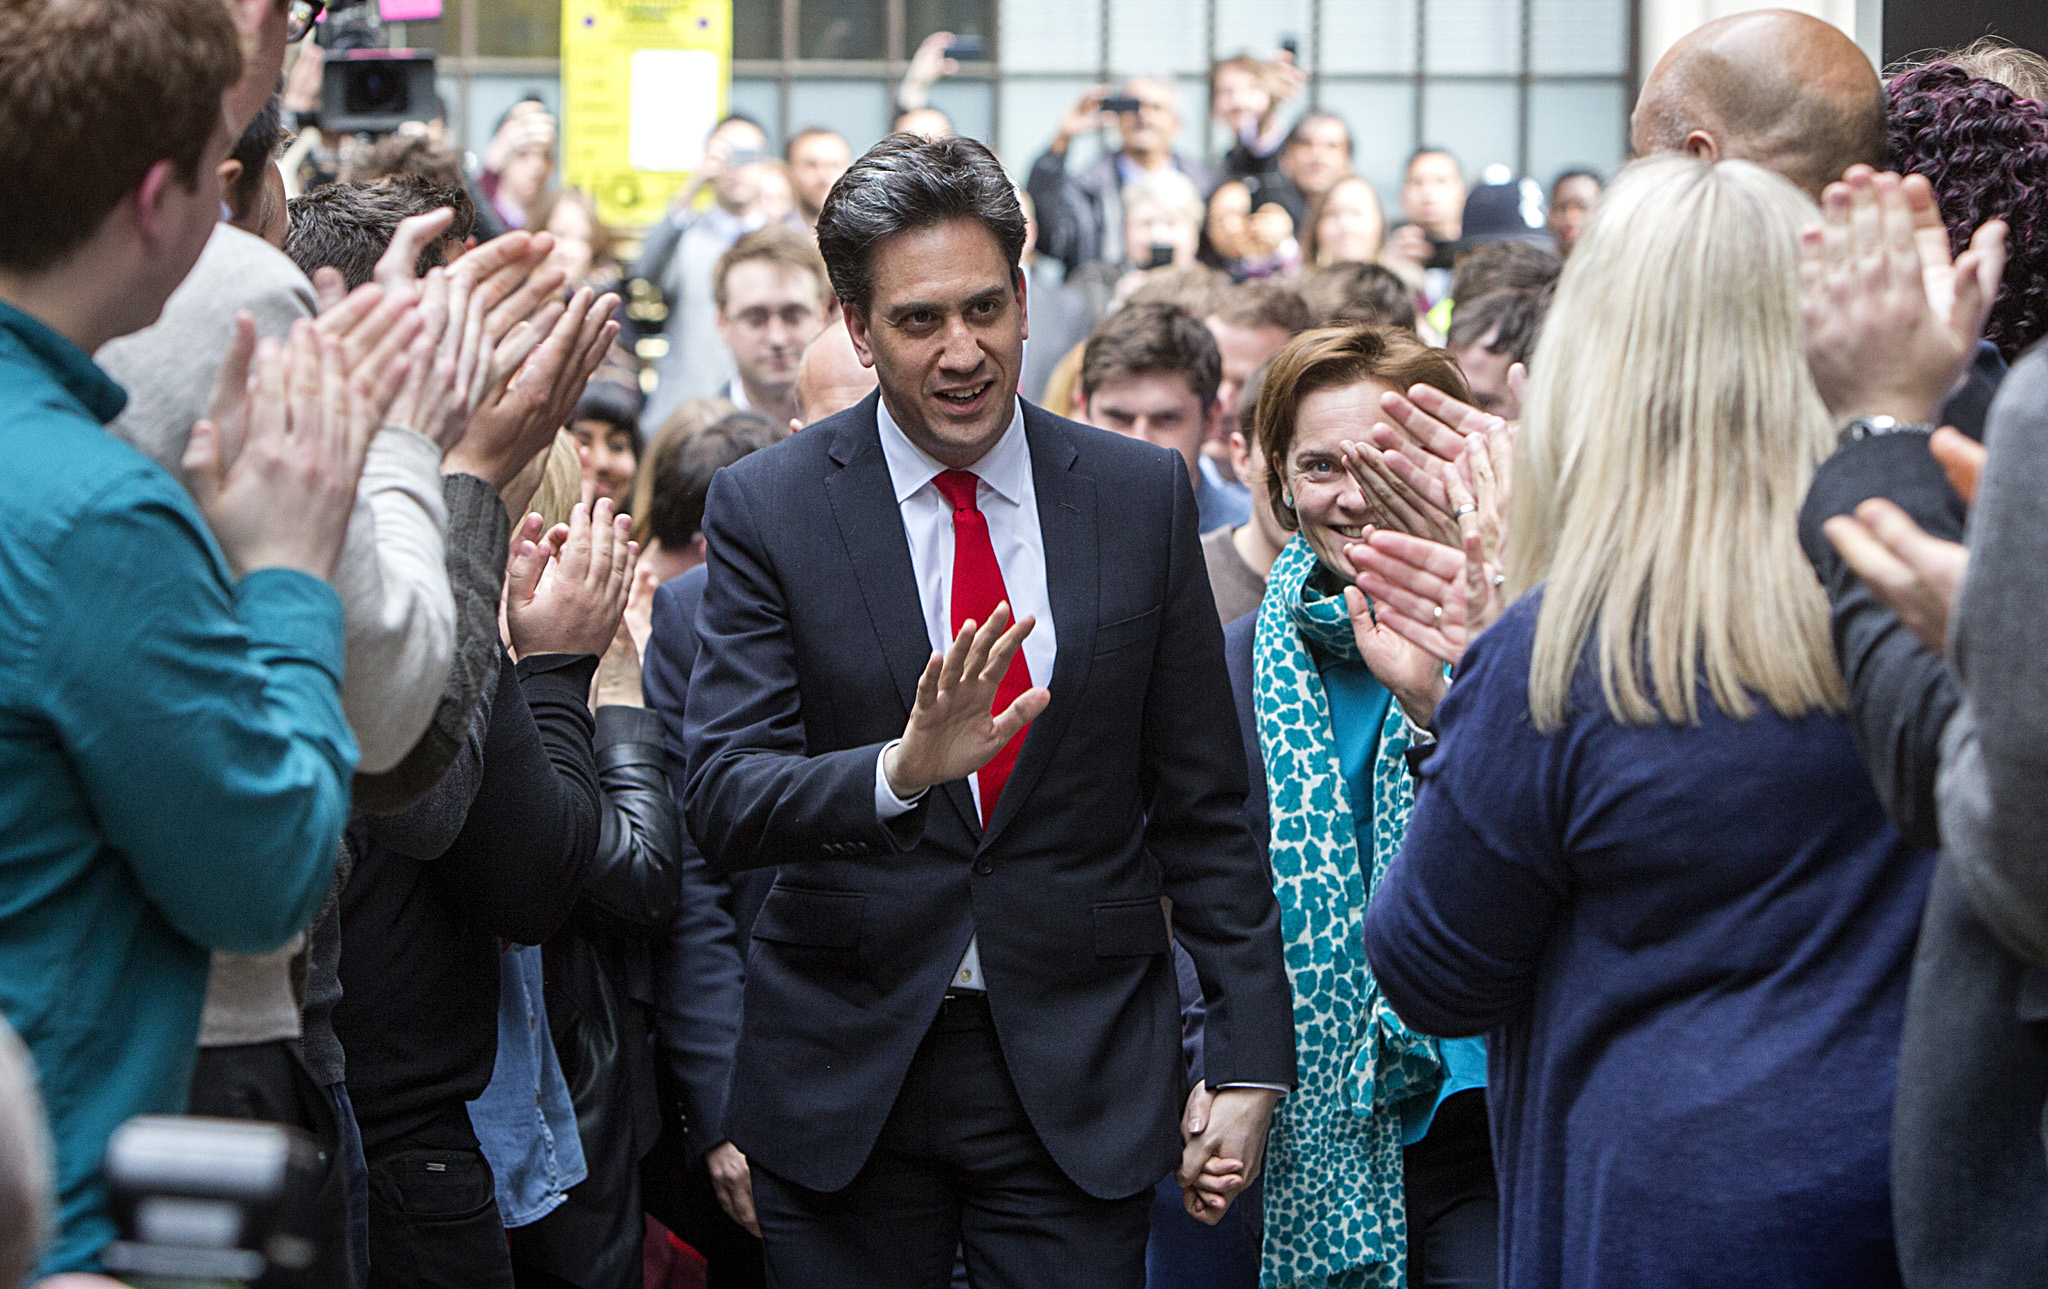 General Election 20915:  Ed Milliband and his wife Justine Thornton arrive at Labour Party HQ after his party's defeat in the general election. Photograph: Rosie Hallam